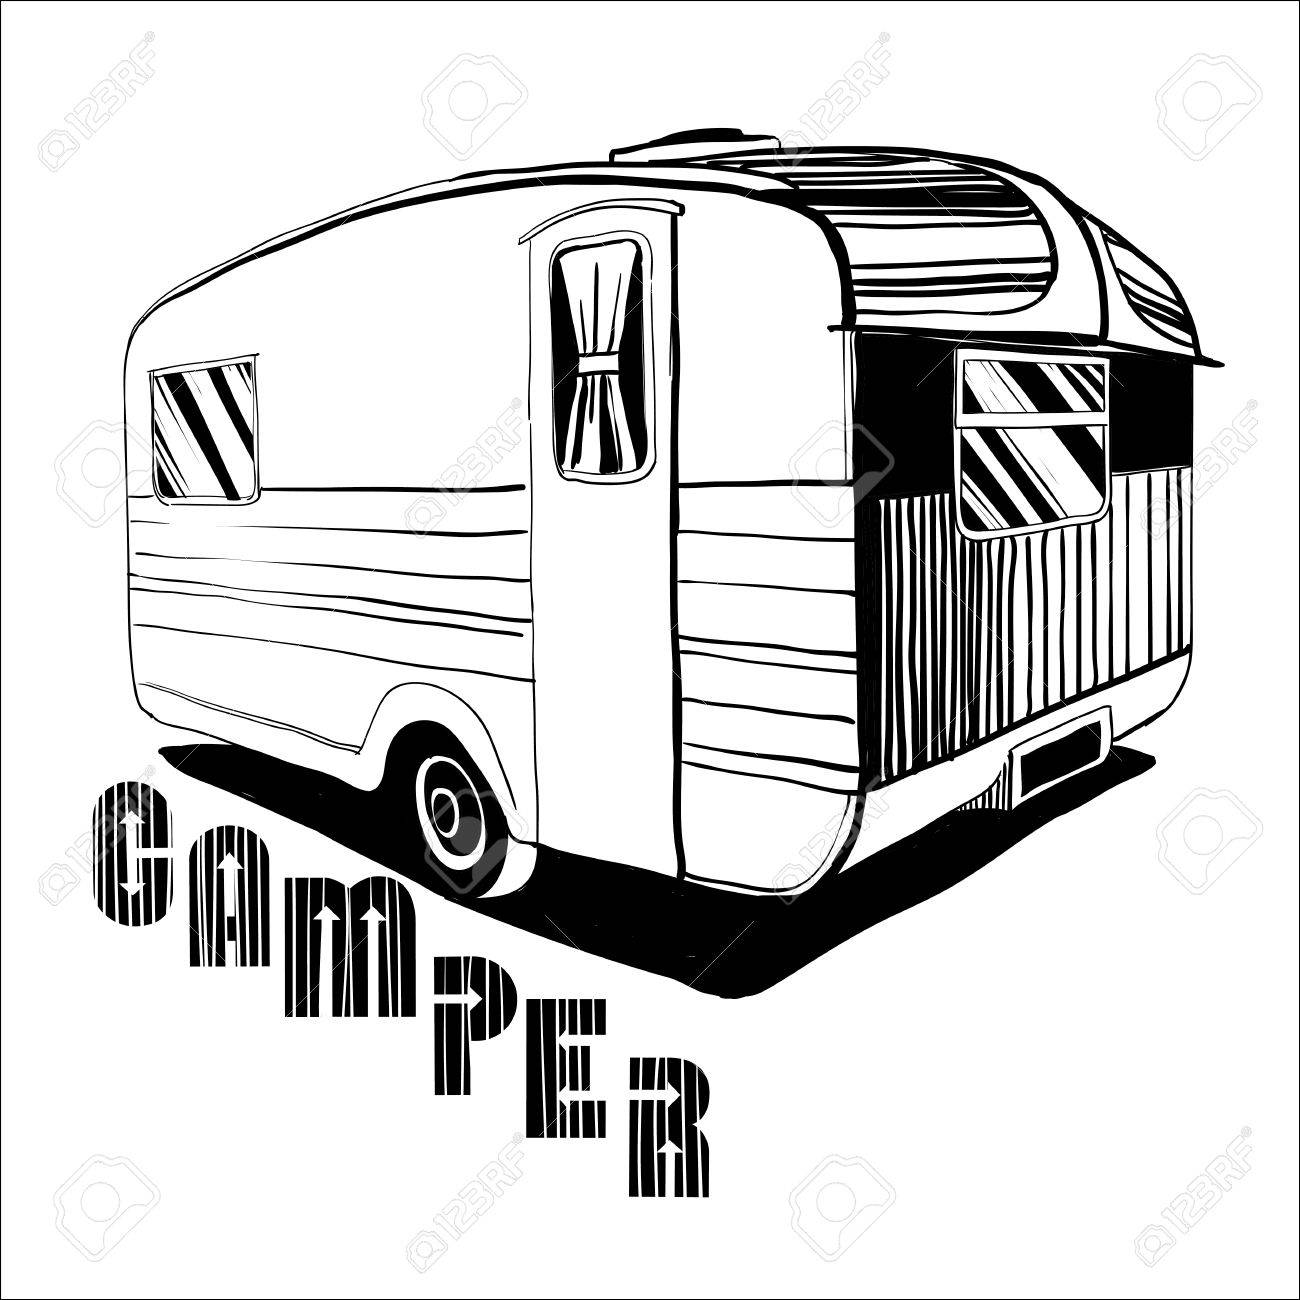 Vector Illustration Of Isolated Hand Drawn Doodle Vintage Camper